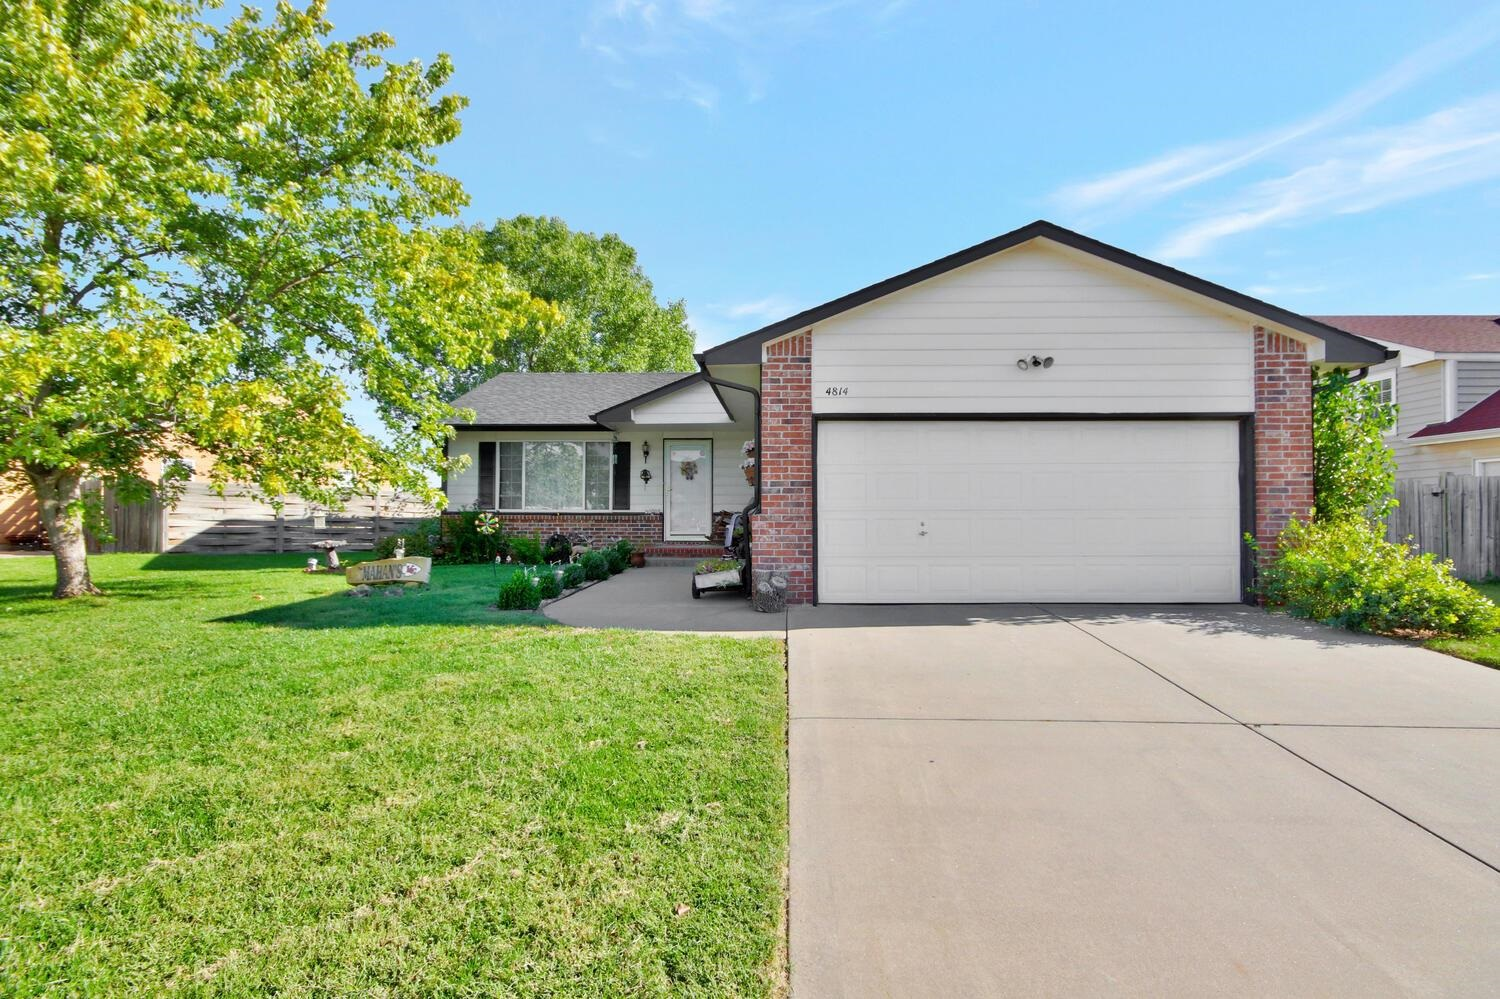 One owner home ready for new owners. This home has a covered front porch, with a great yard for ente